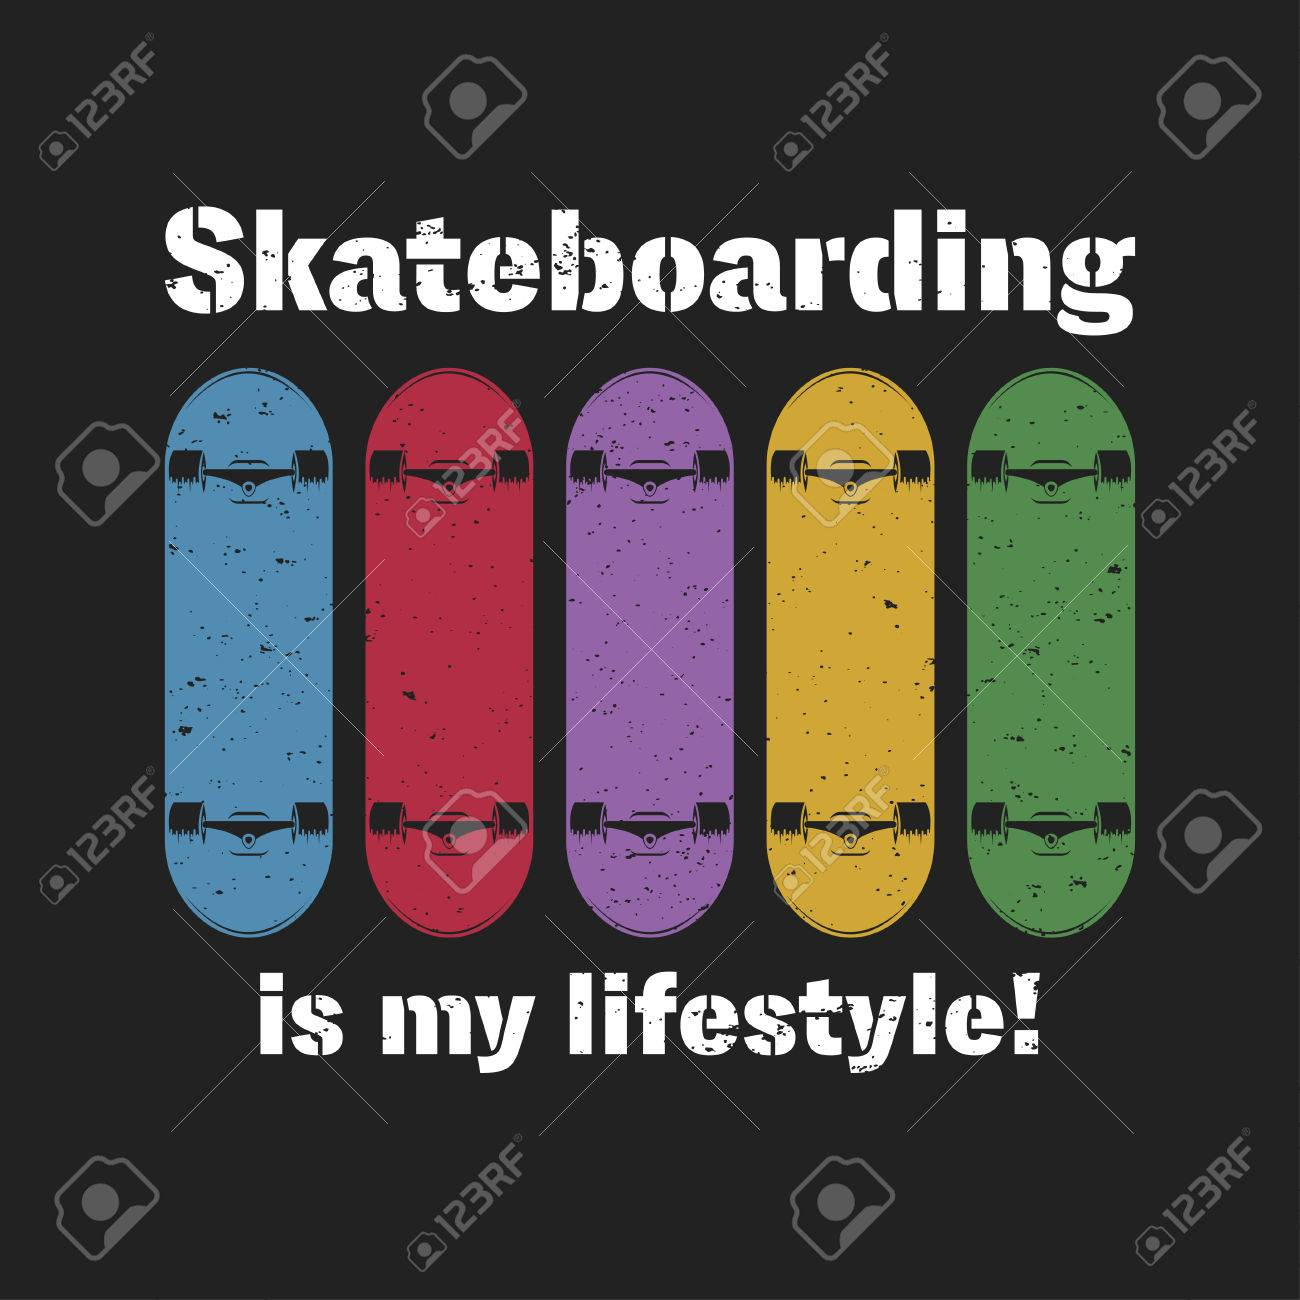 Skateboarding t shirt graphic. Urban skating. Vintage tee graphic with lettering. Vector - 81712343